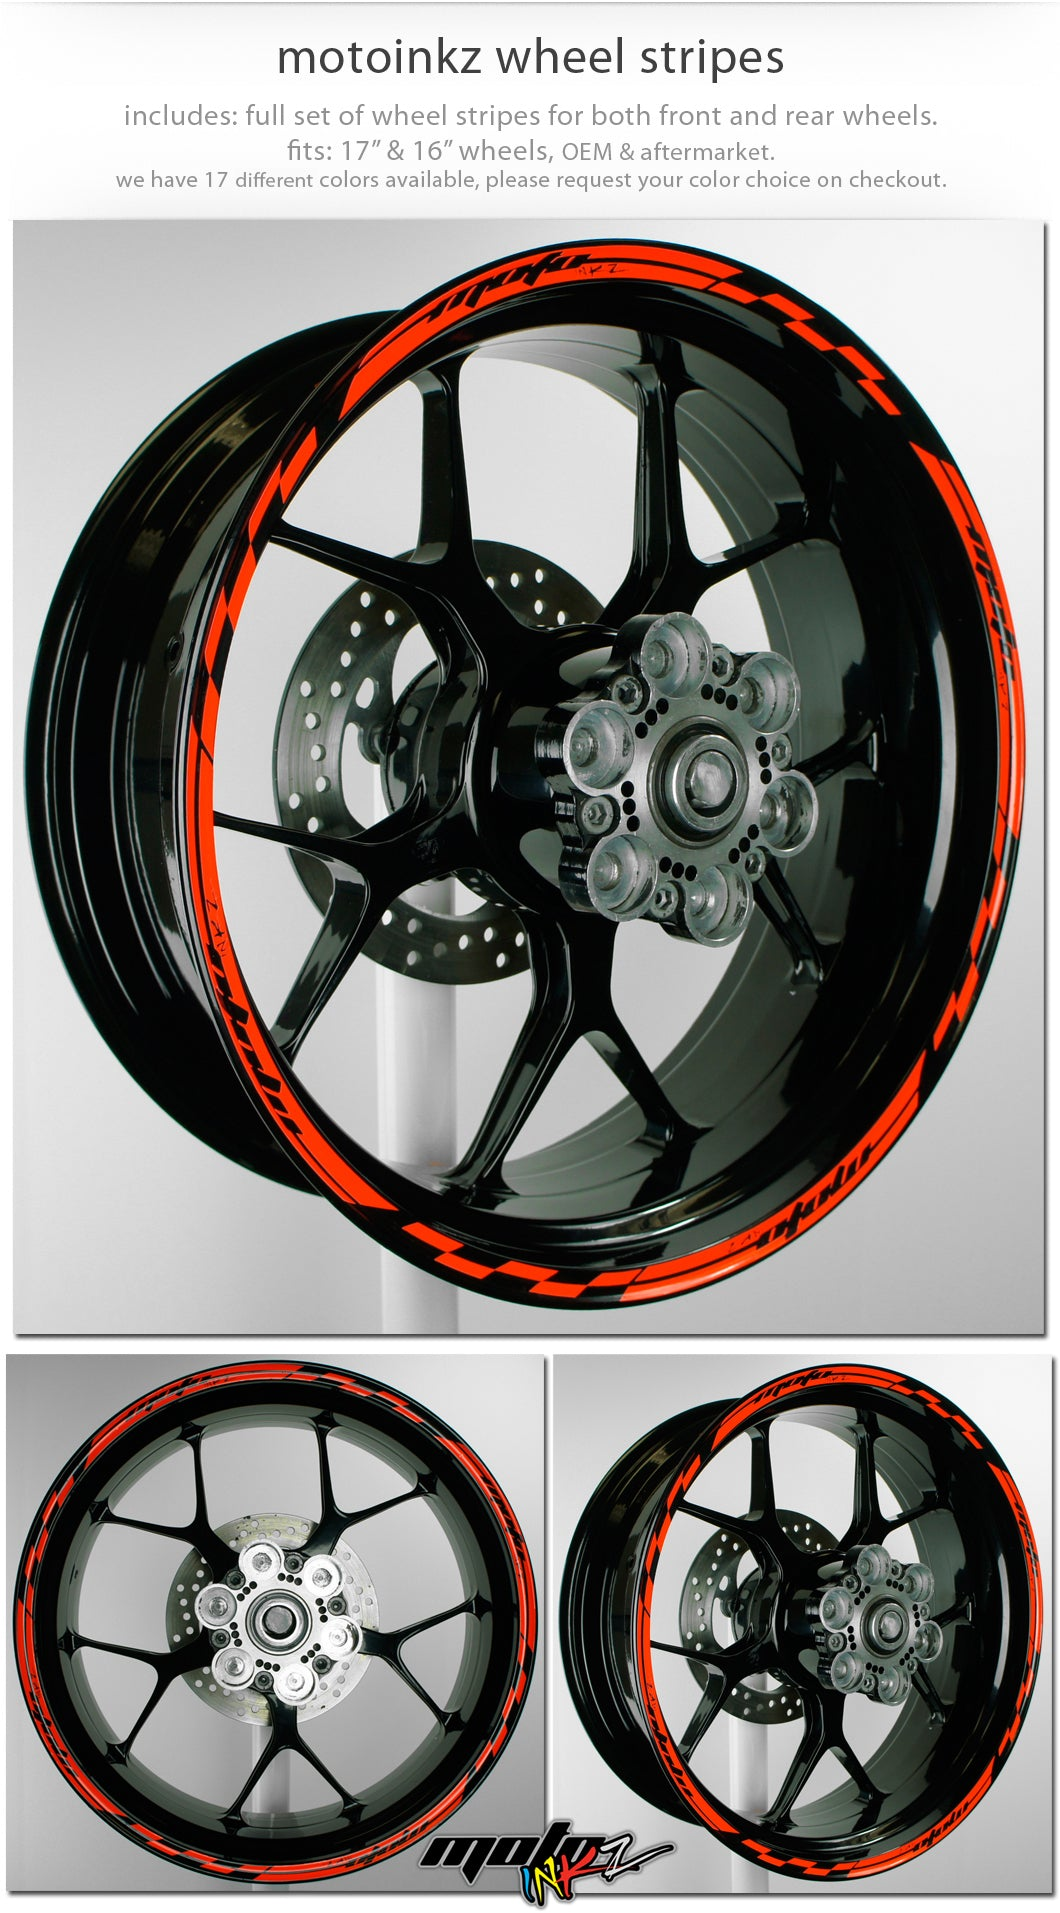 Details about wheel rim stripes tape decals yamaha r1 r6 fz yzf r3 17 16 15 14 18 19 stickers